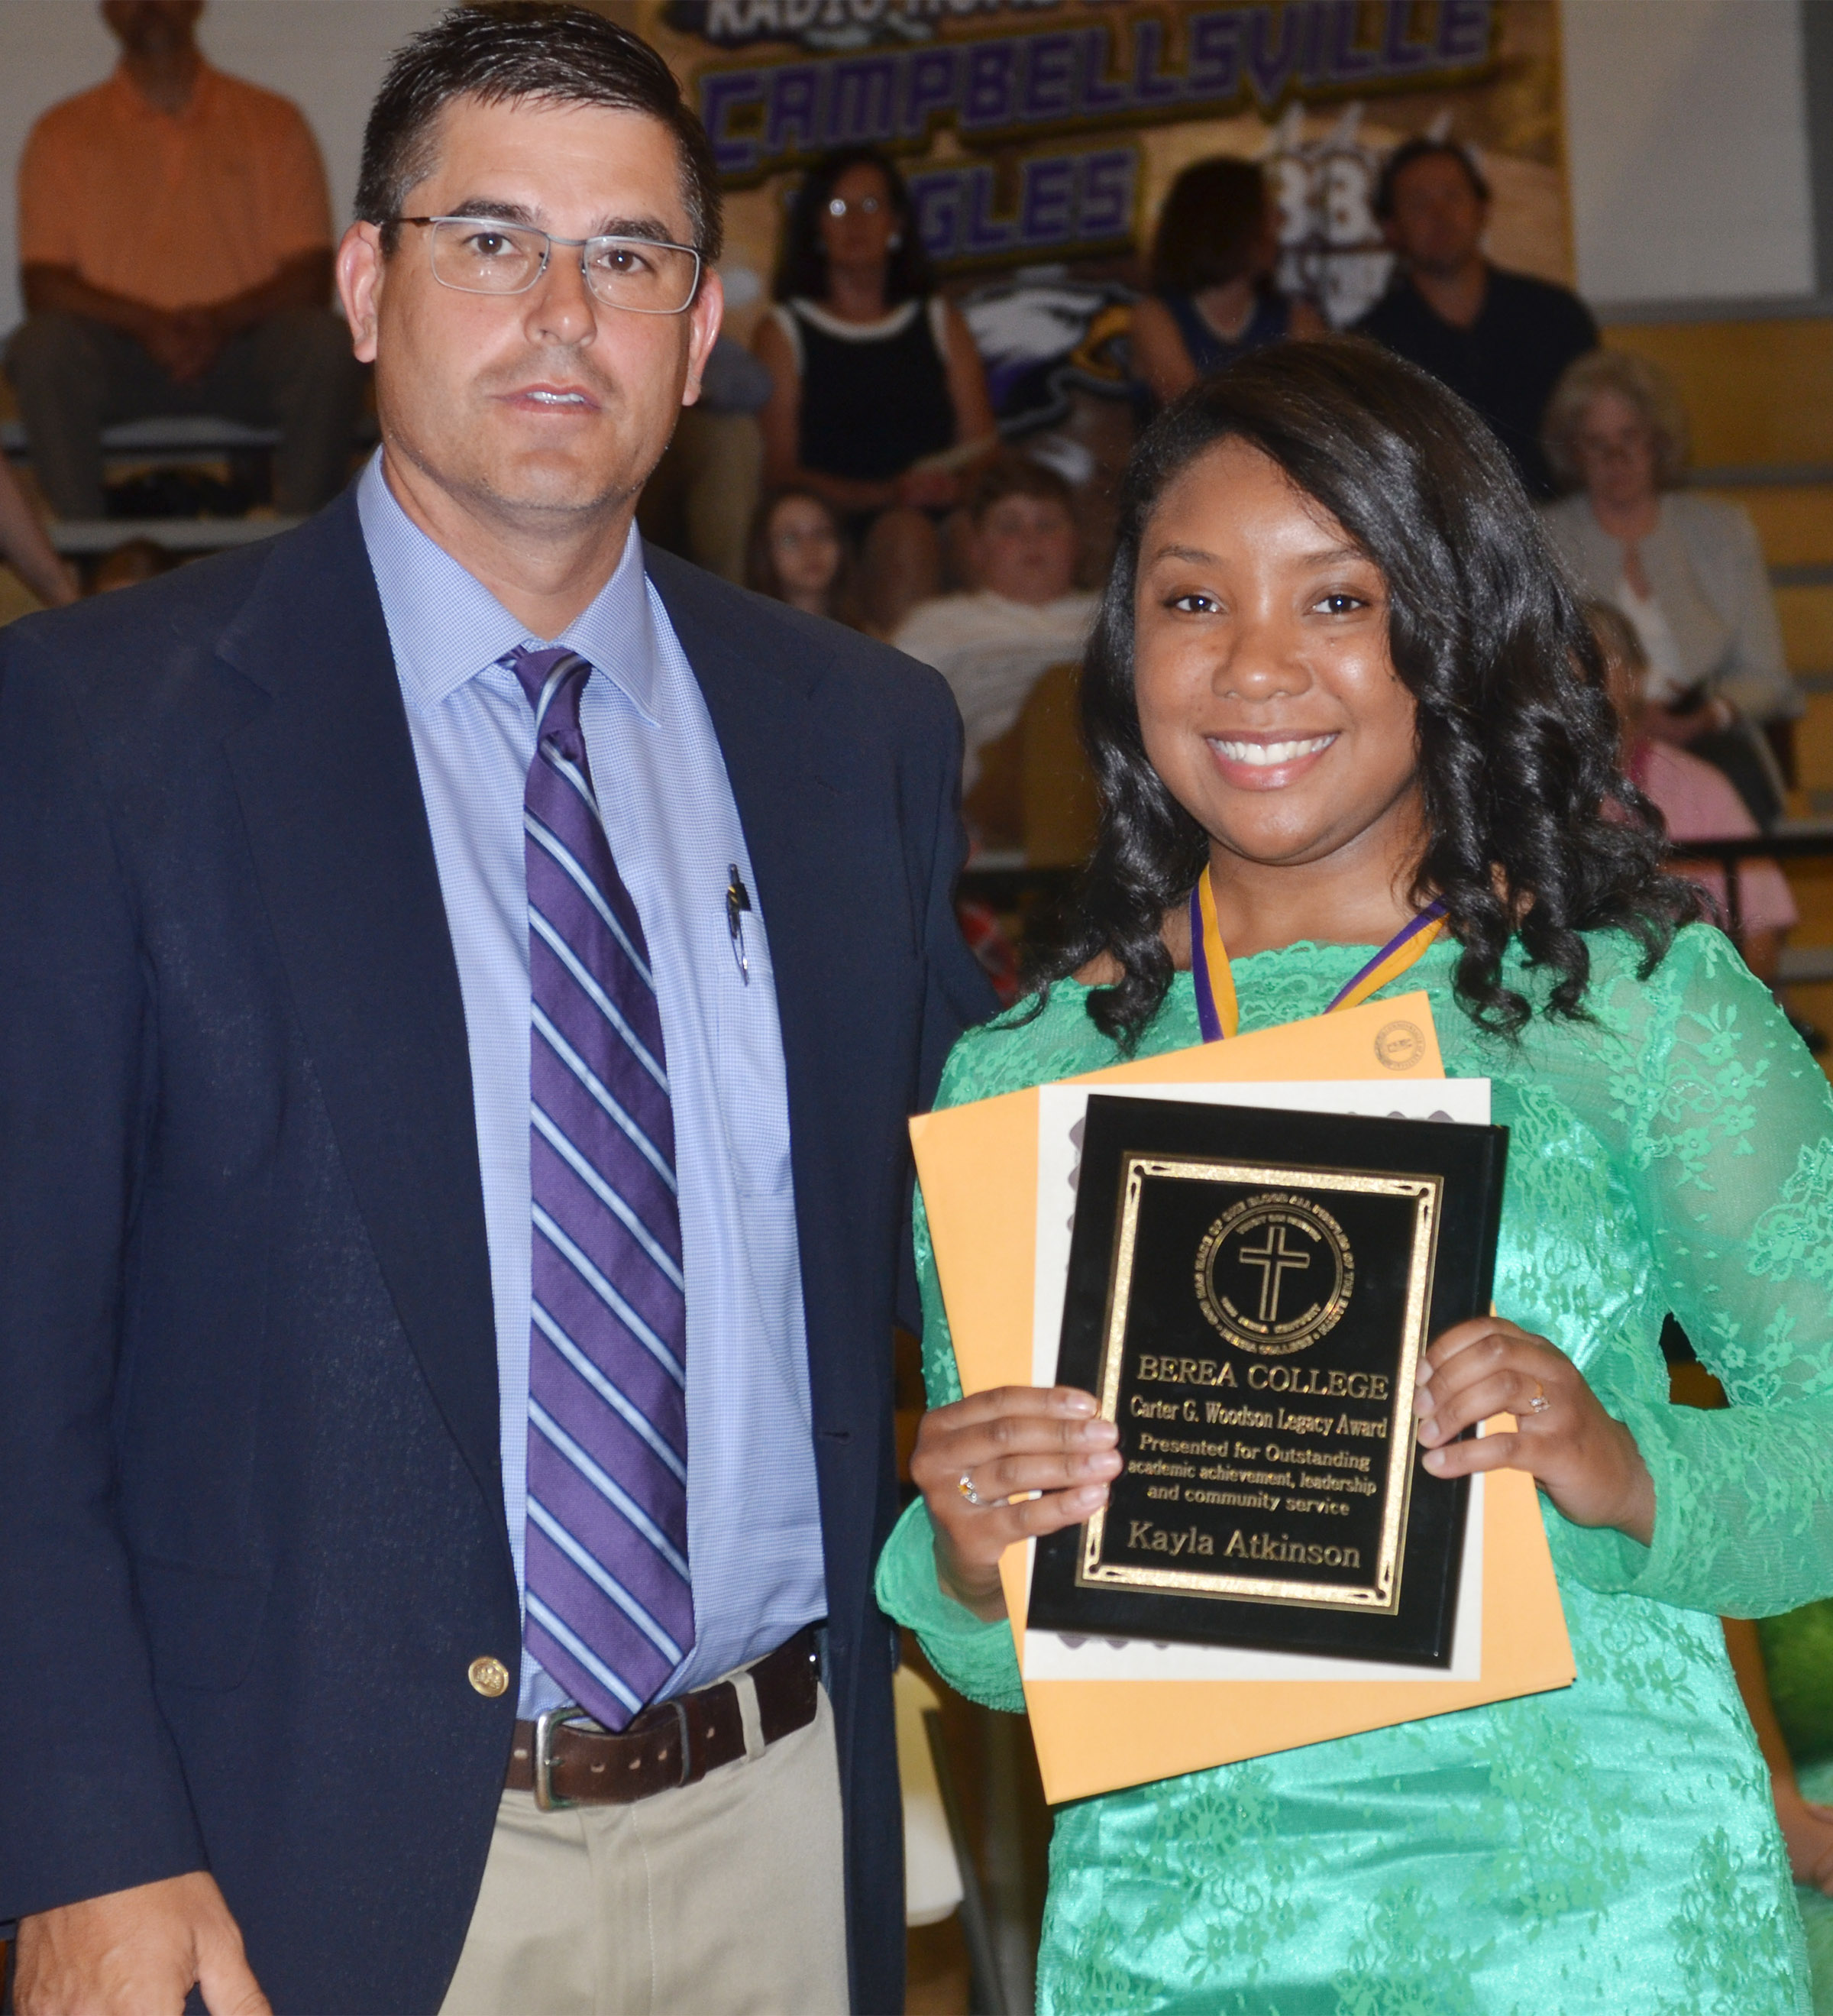 Kayla Atkinson receives the Berea College Carter G. Woodson Legacy Award. She is pictured with Principal Kirby Smith.